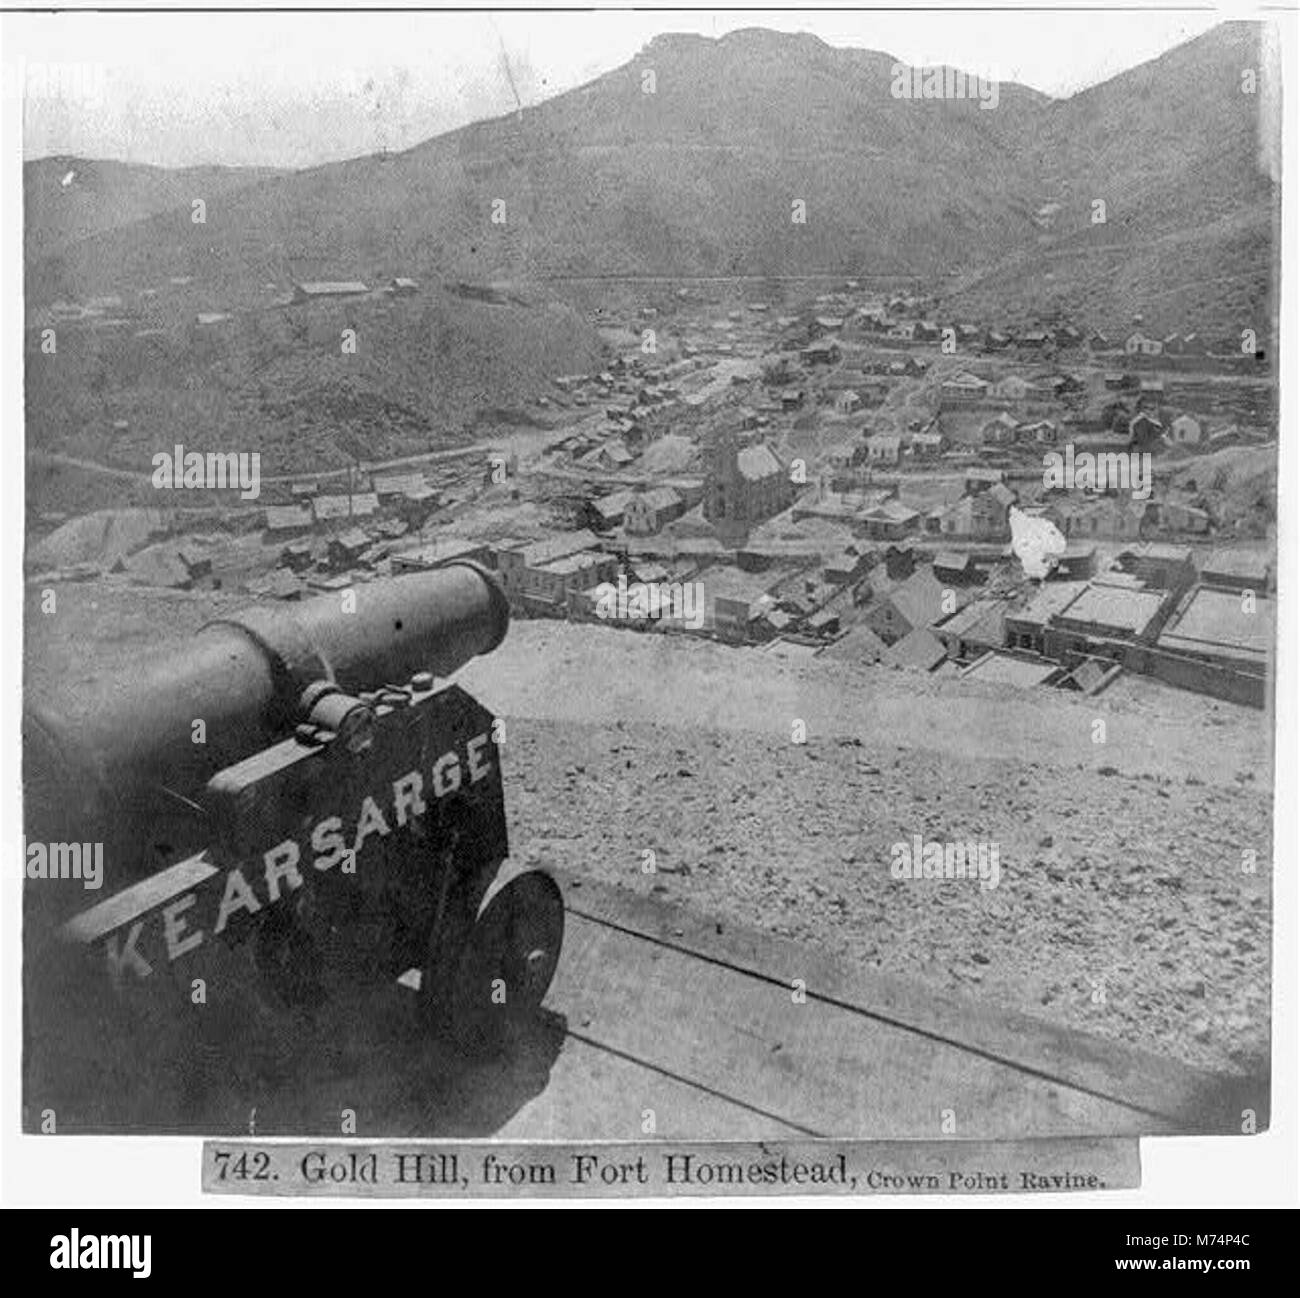 Gold Hill from Fort Homestead, Crown Point Ravine LCCN2002723119 - Stock Image